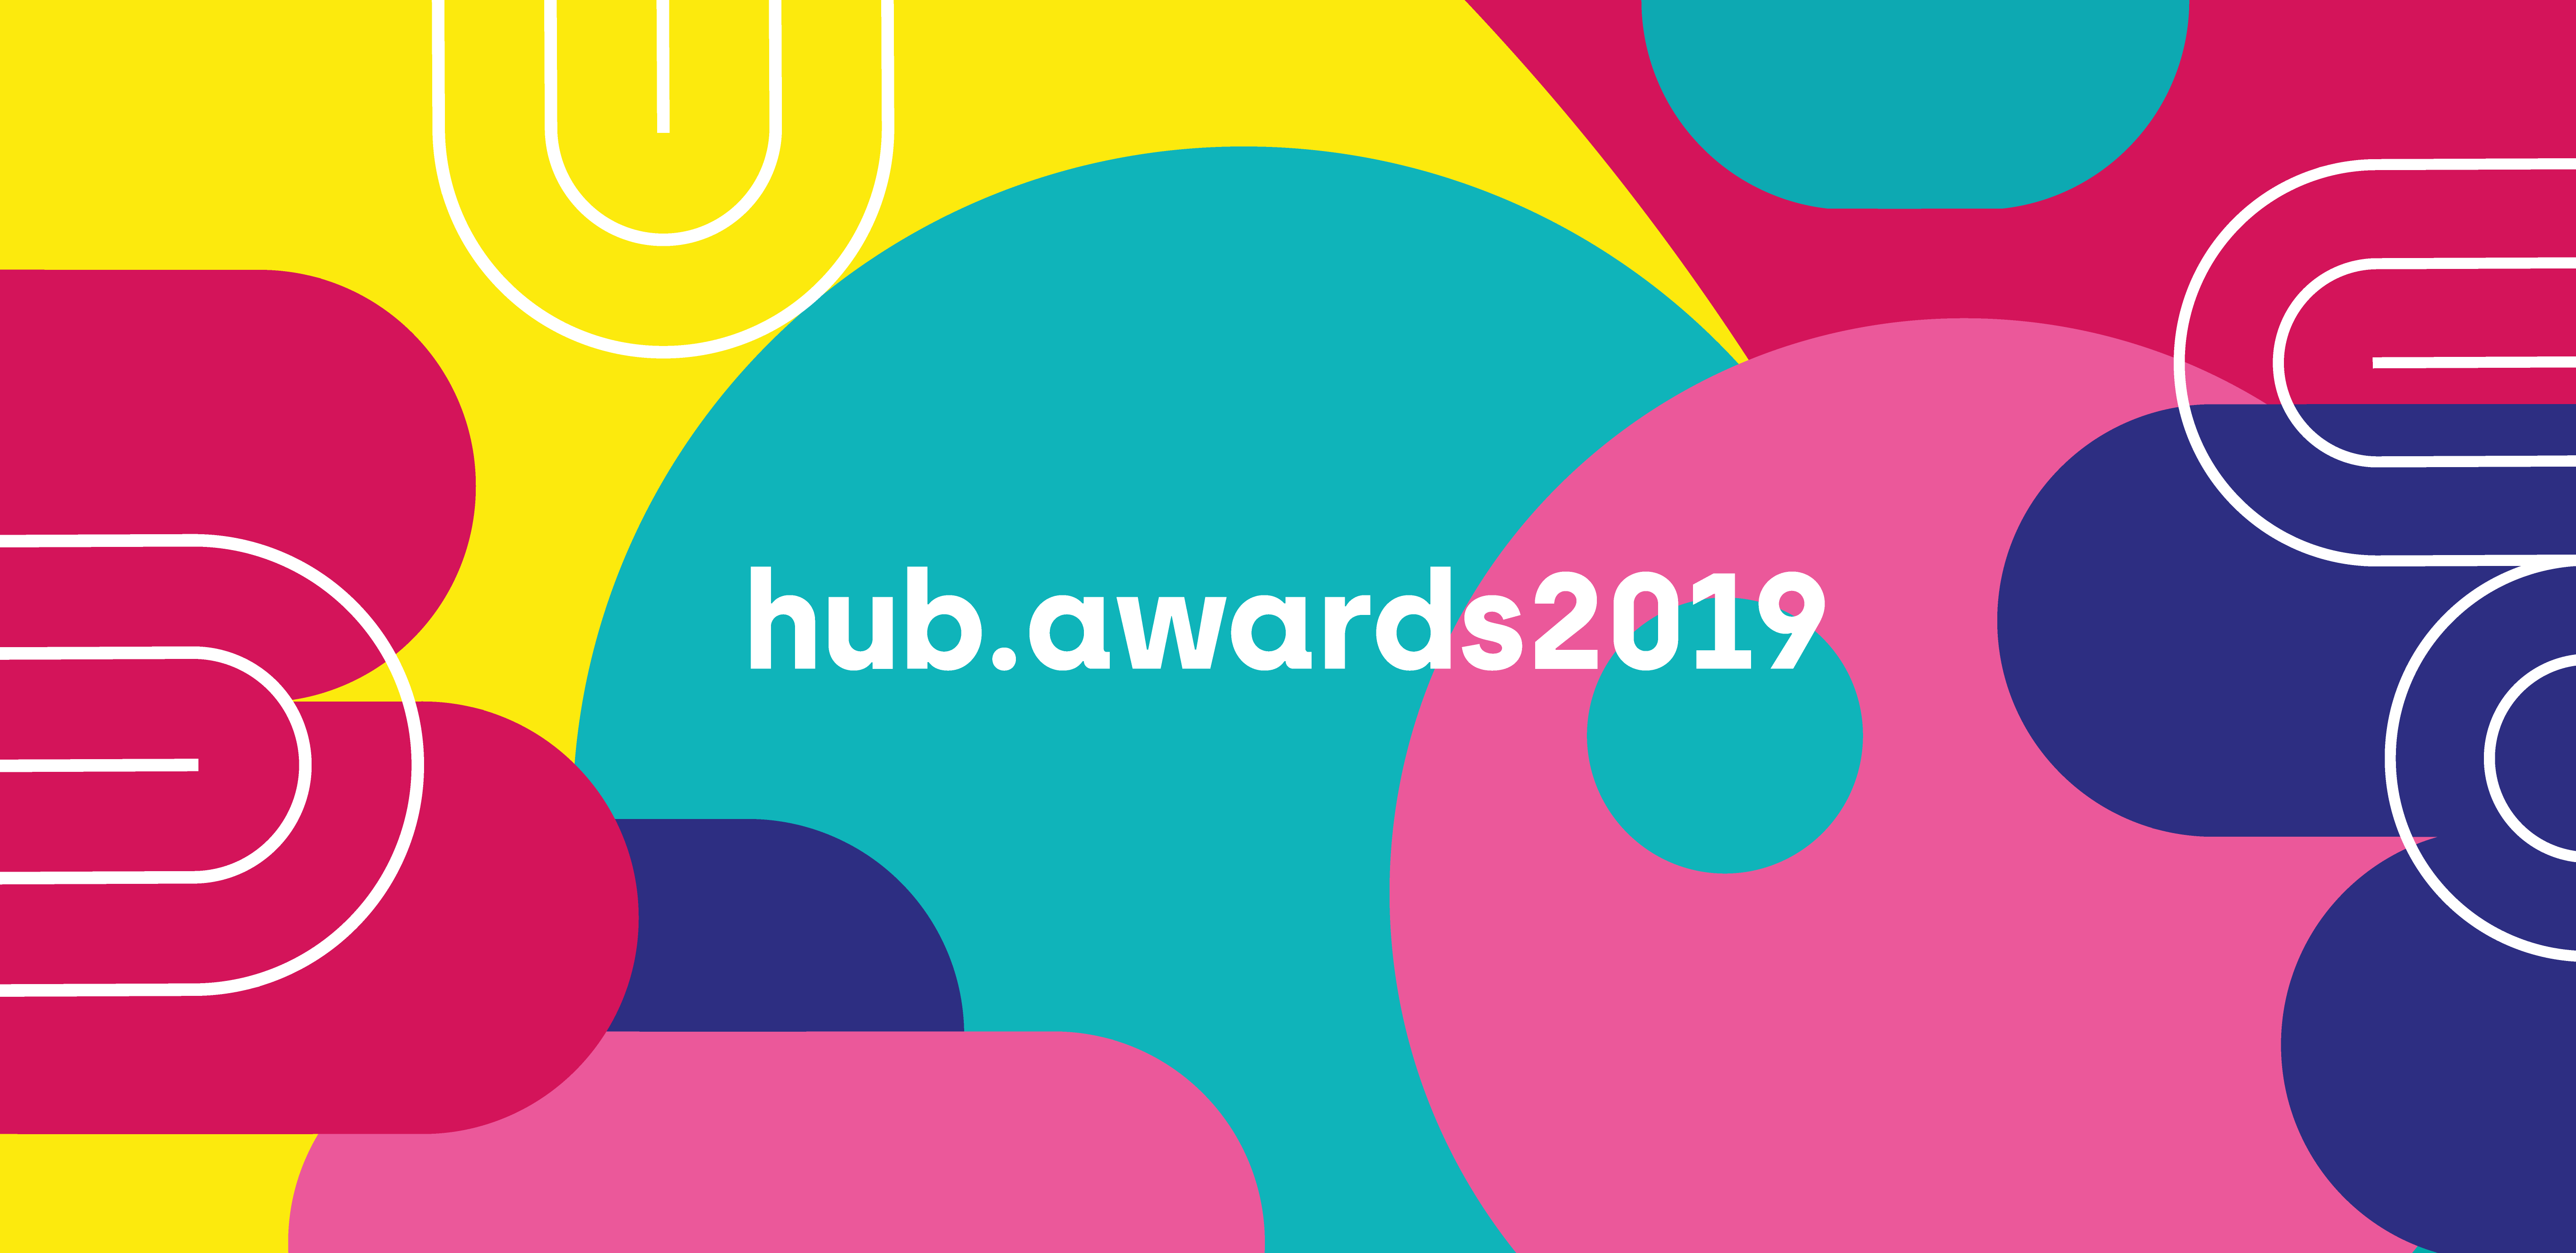 hub.awards2019: the public vote is open!